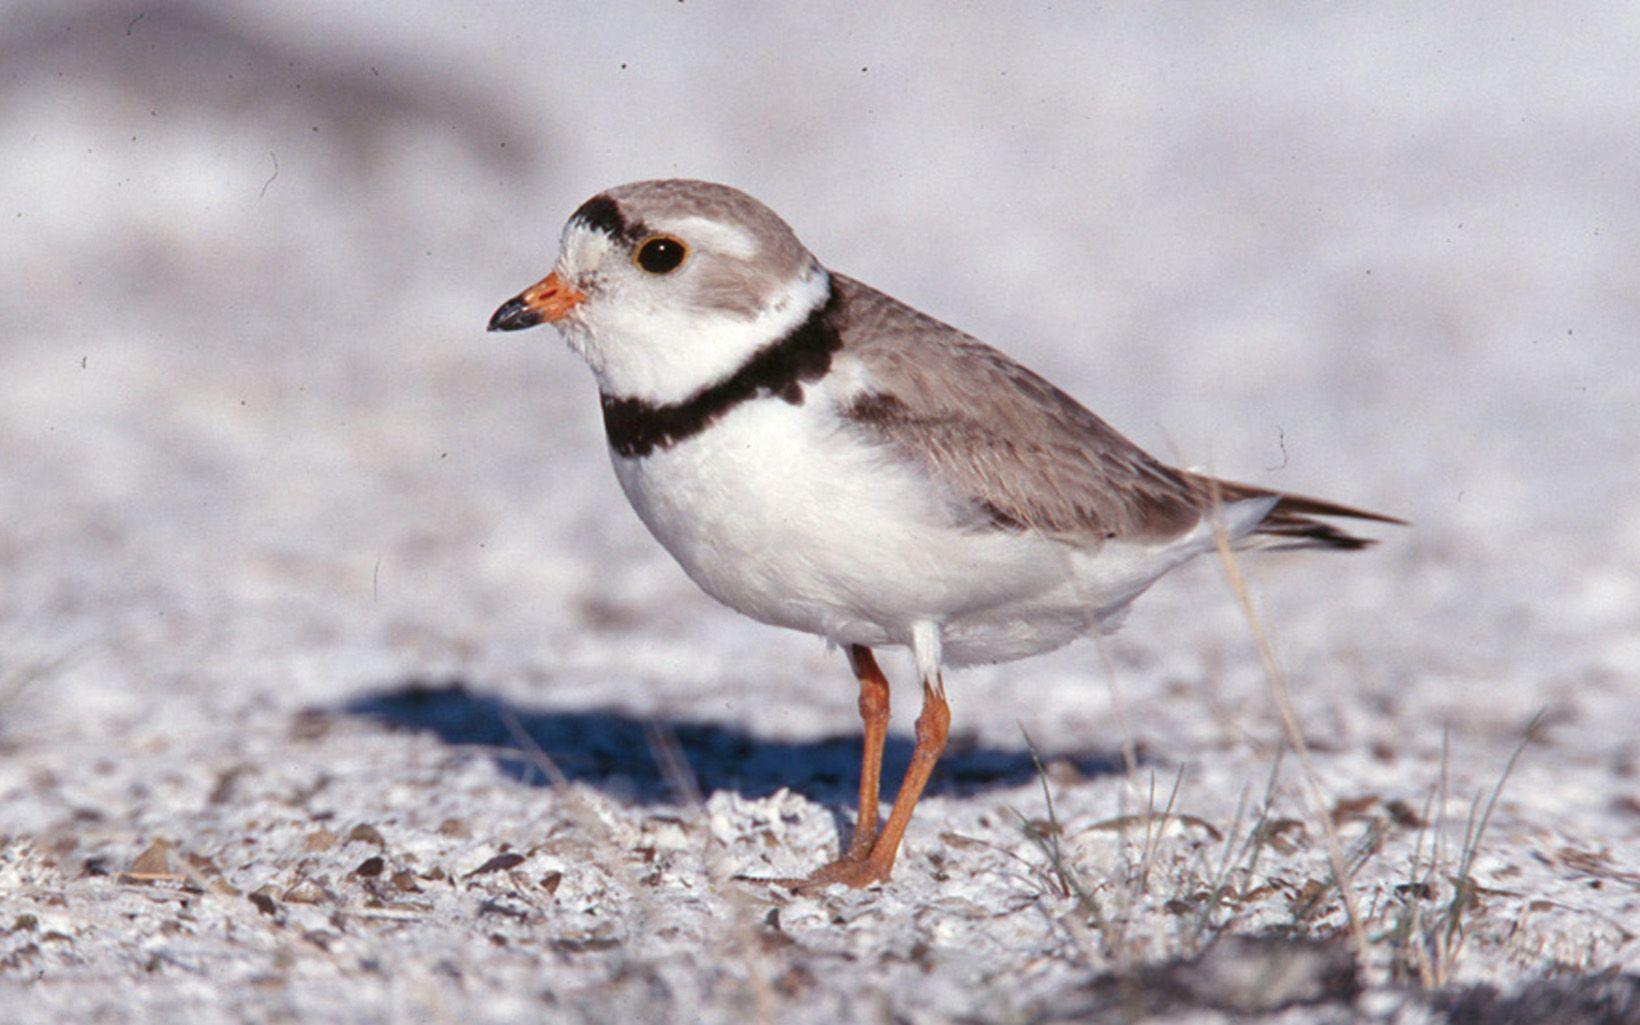 Small grey and white bird standing in white sand.